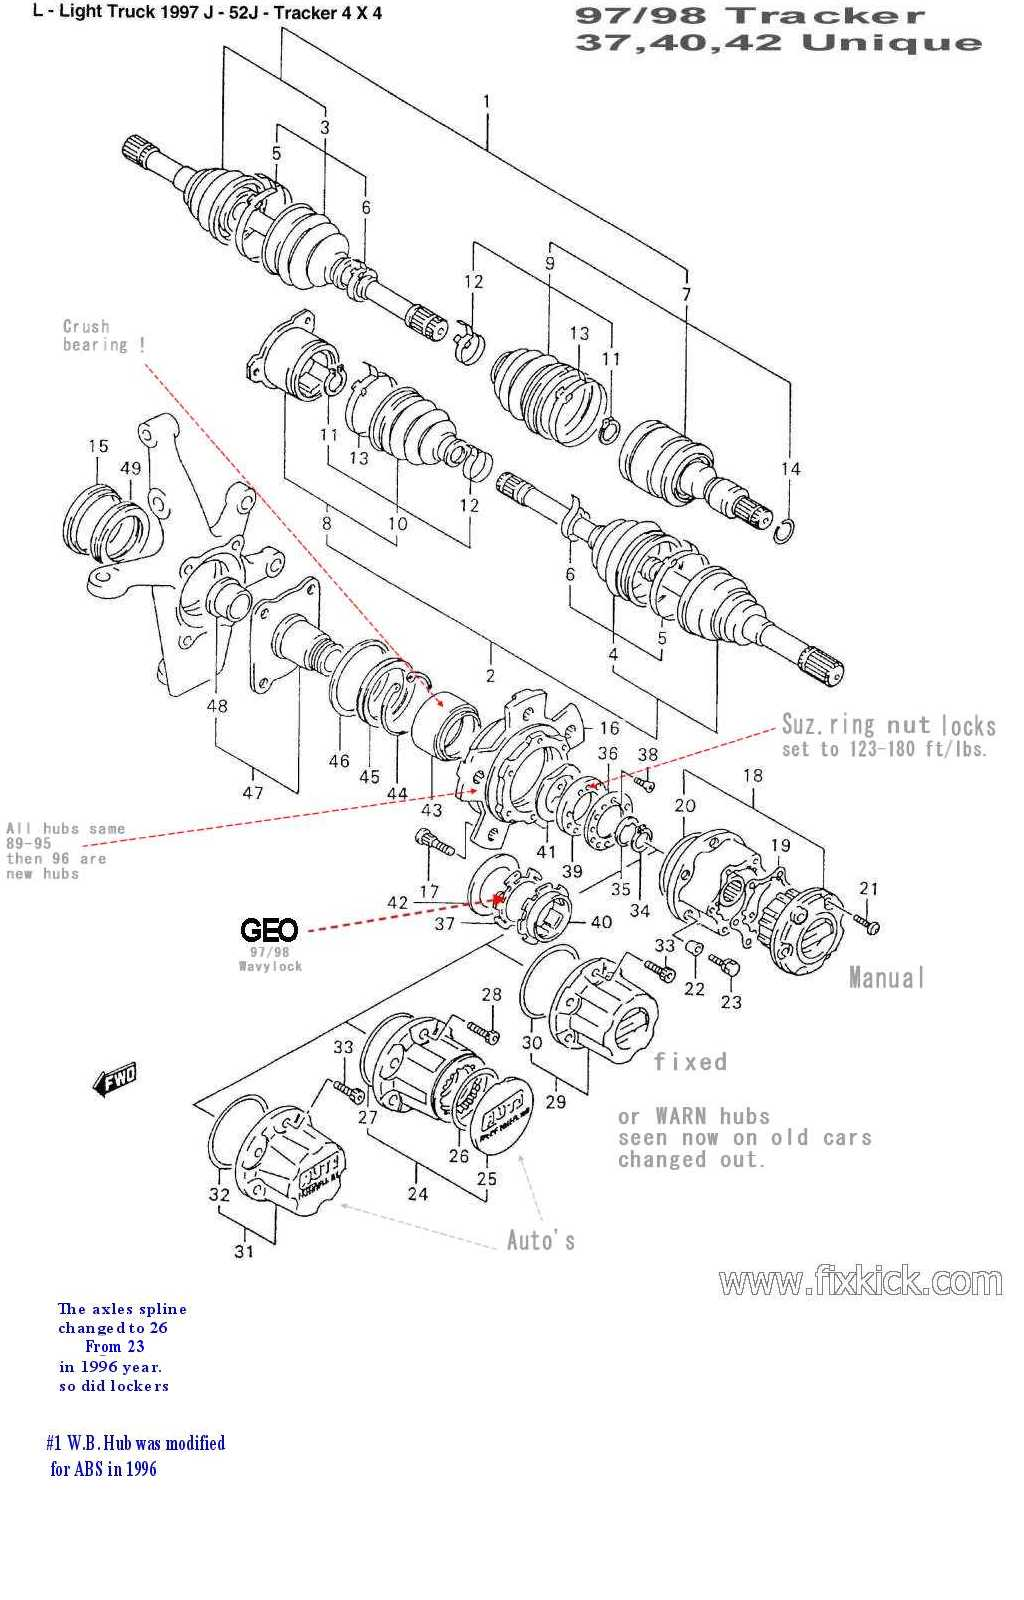 geo tracker parts diagram with Fw Bearings on Wiring Diagram For 1992 Geo Prizm moreover T23098371 2001 tracker transmission in addition 2000 Chevrolet Tracker 2 0l Manual 4wd Suv Wiring Diagrams in addition FW BEARINGS likewise 23373 Automatic Locking Hubs 3 Screw 1996 Rebuild.